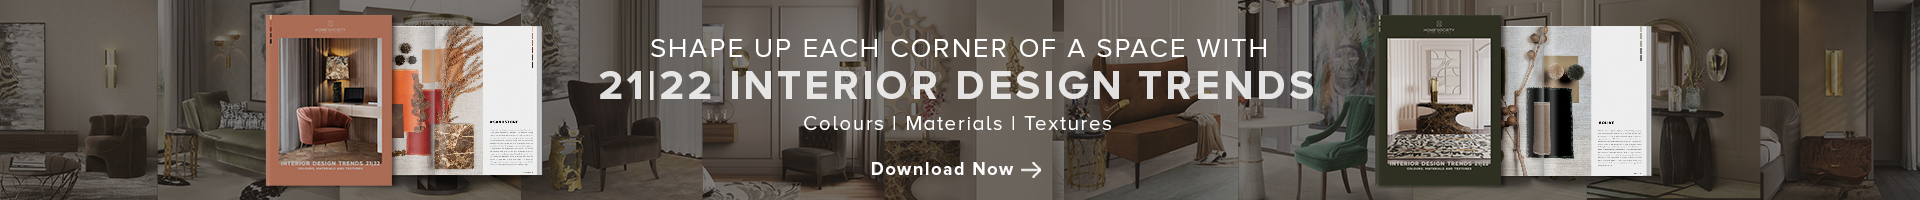 Banner de Header - Book Interior Design Trends 2021 / 2022